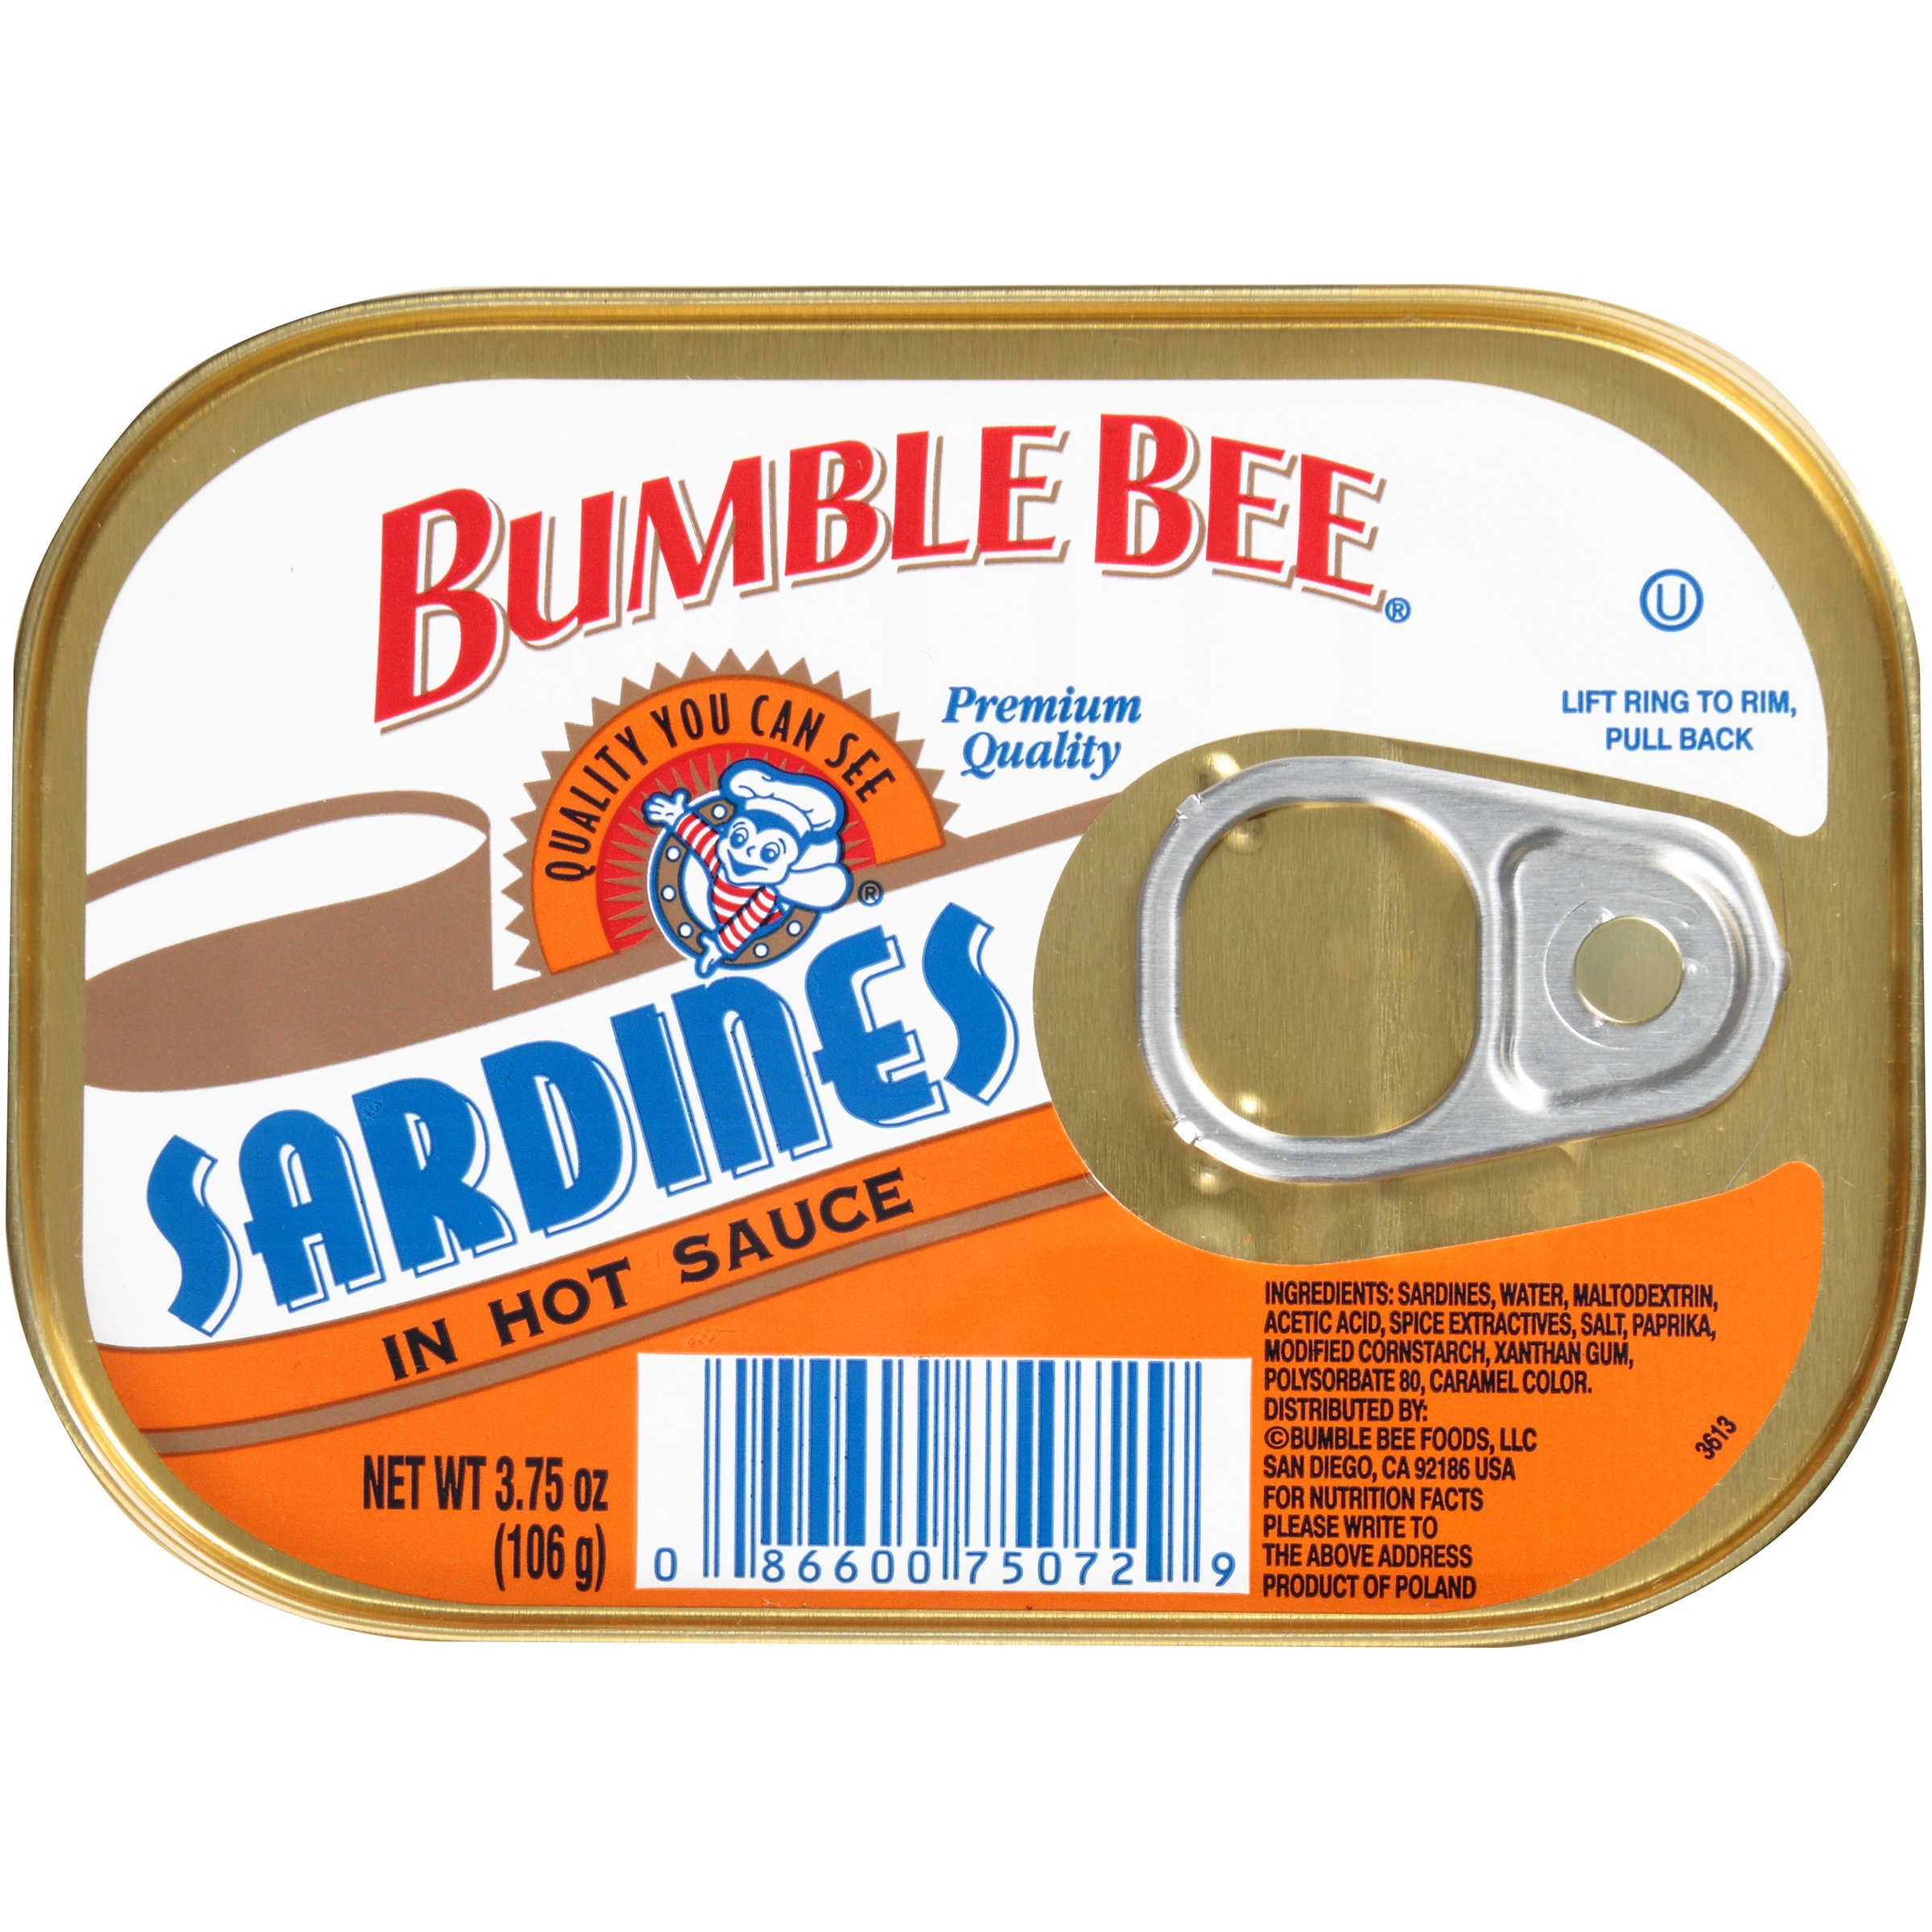 Bumble Bee Sardines in Hot Sauce, 3.75 oz by Bumble Bee Foods, LLC